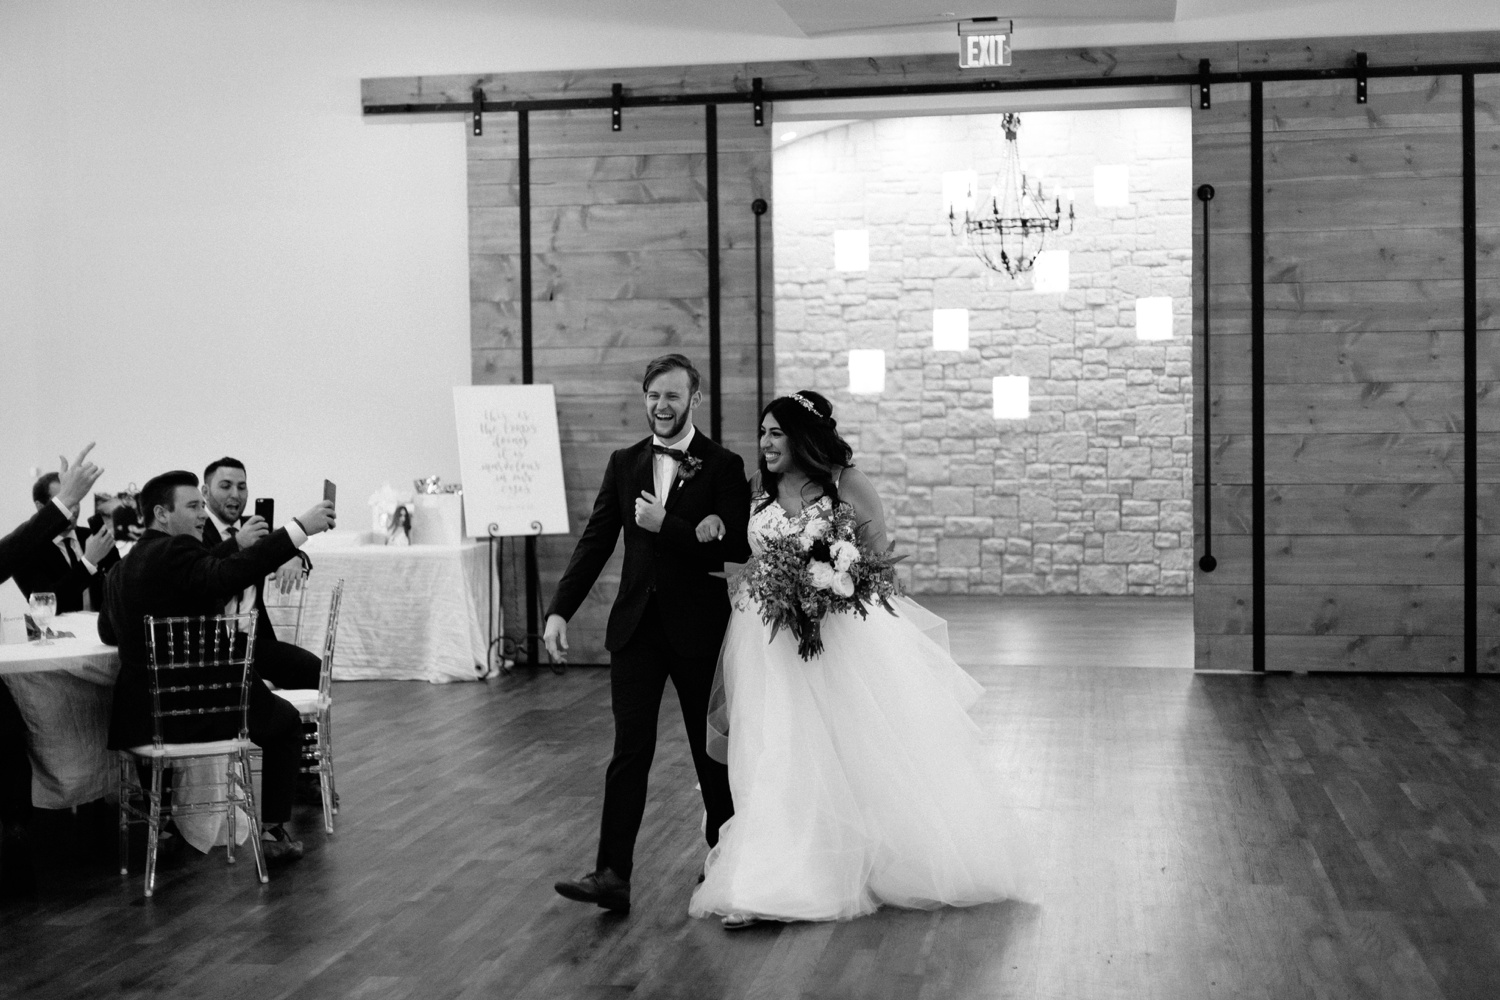 Grant + Lysette | a vibrant, deep burgundy and navy, and mixed metals wedding at Hidden Pines Chapel by North Texas Wedding Photographer Rachel Meagan Photography 132